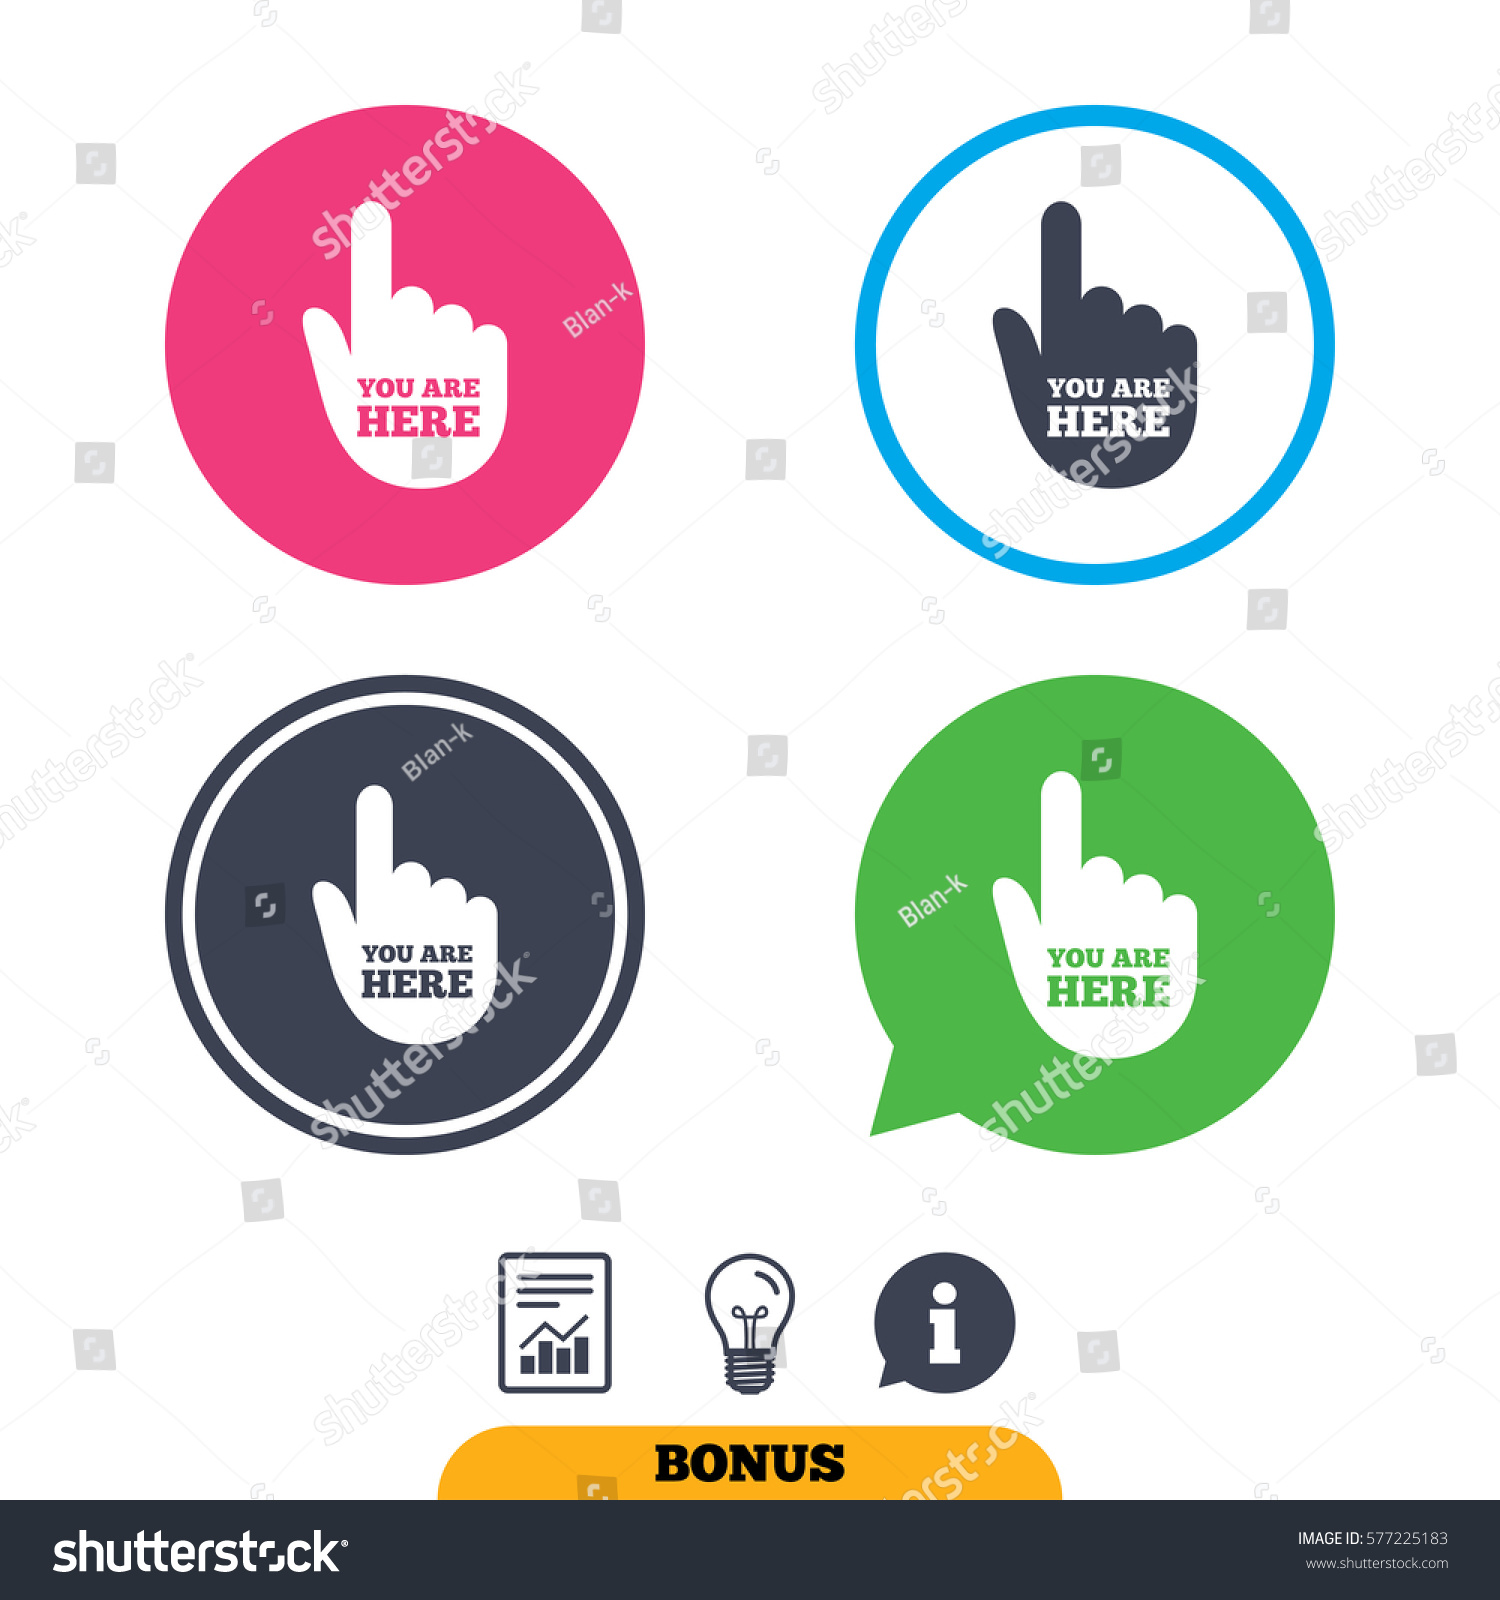 You Here Sign Icon Info Symbol Stock Illustration 577225183